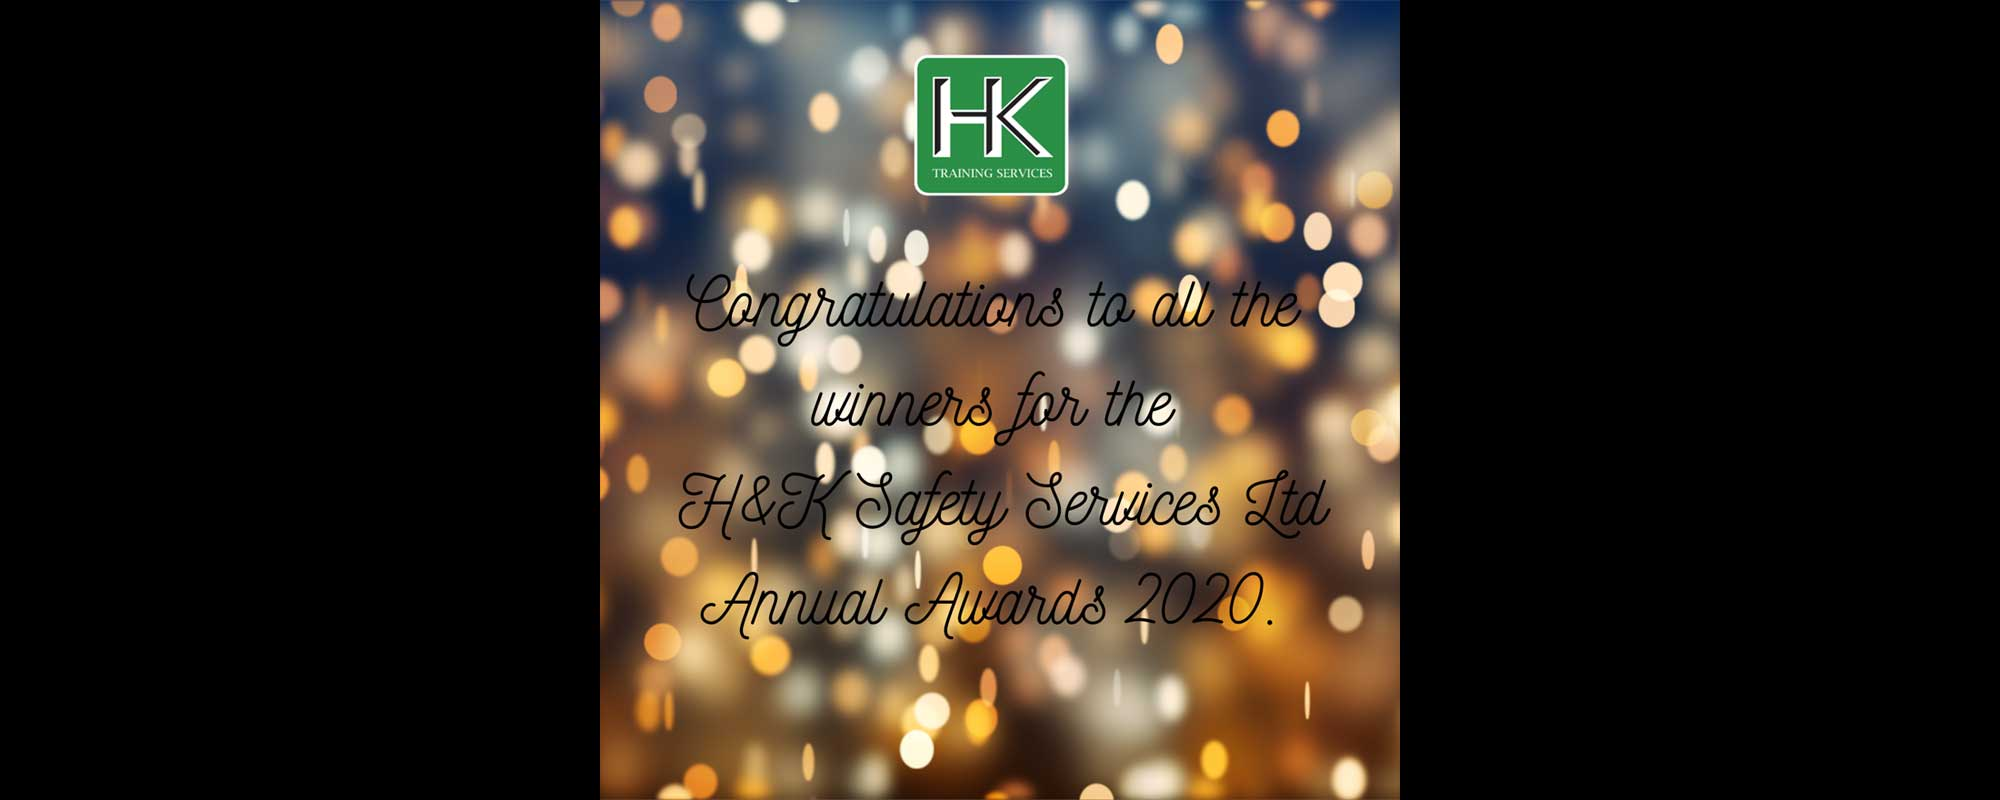 Congratulations to the HK Training Annual Award winners 2020